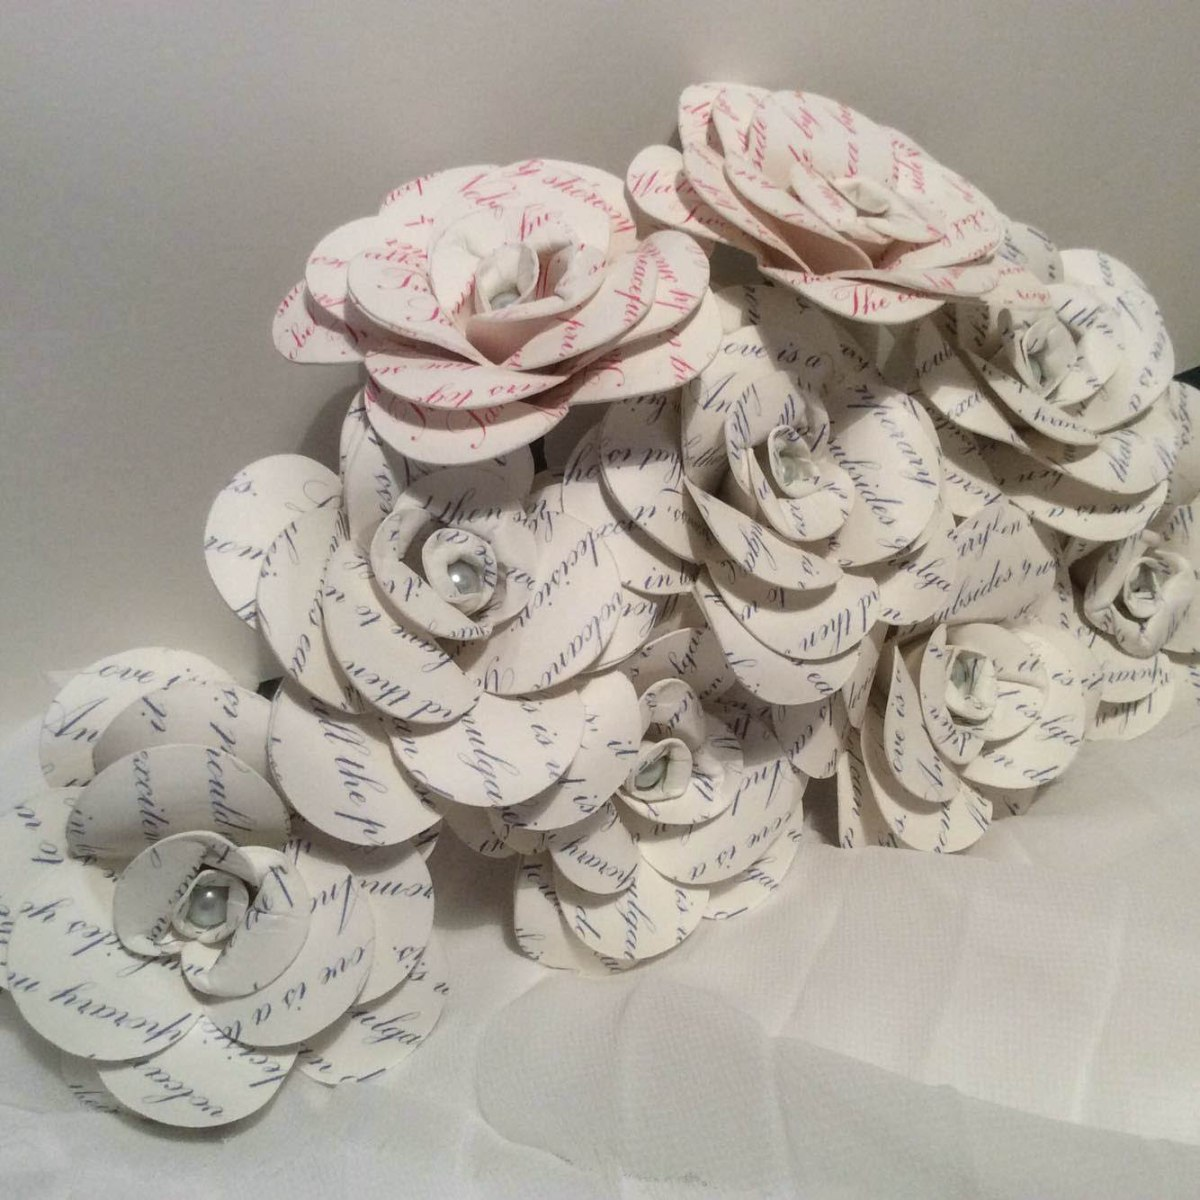 A photograph of around a dozen paper flowers in a bouquet made by Julie for a wedding